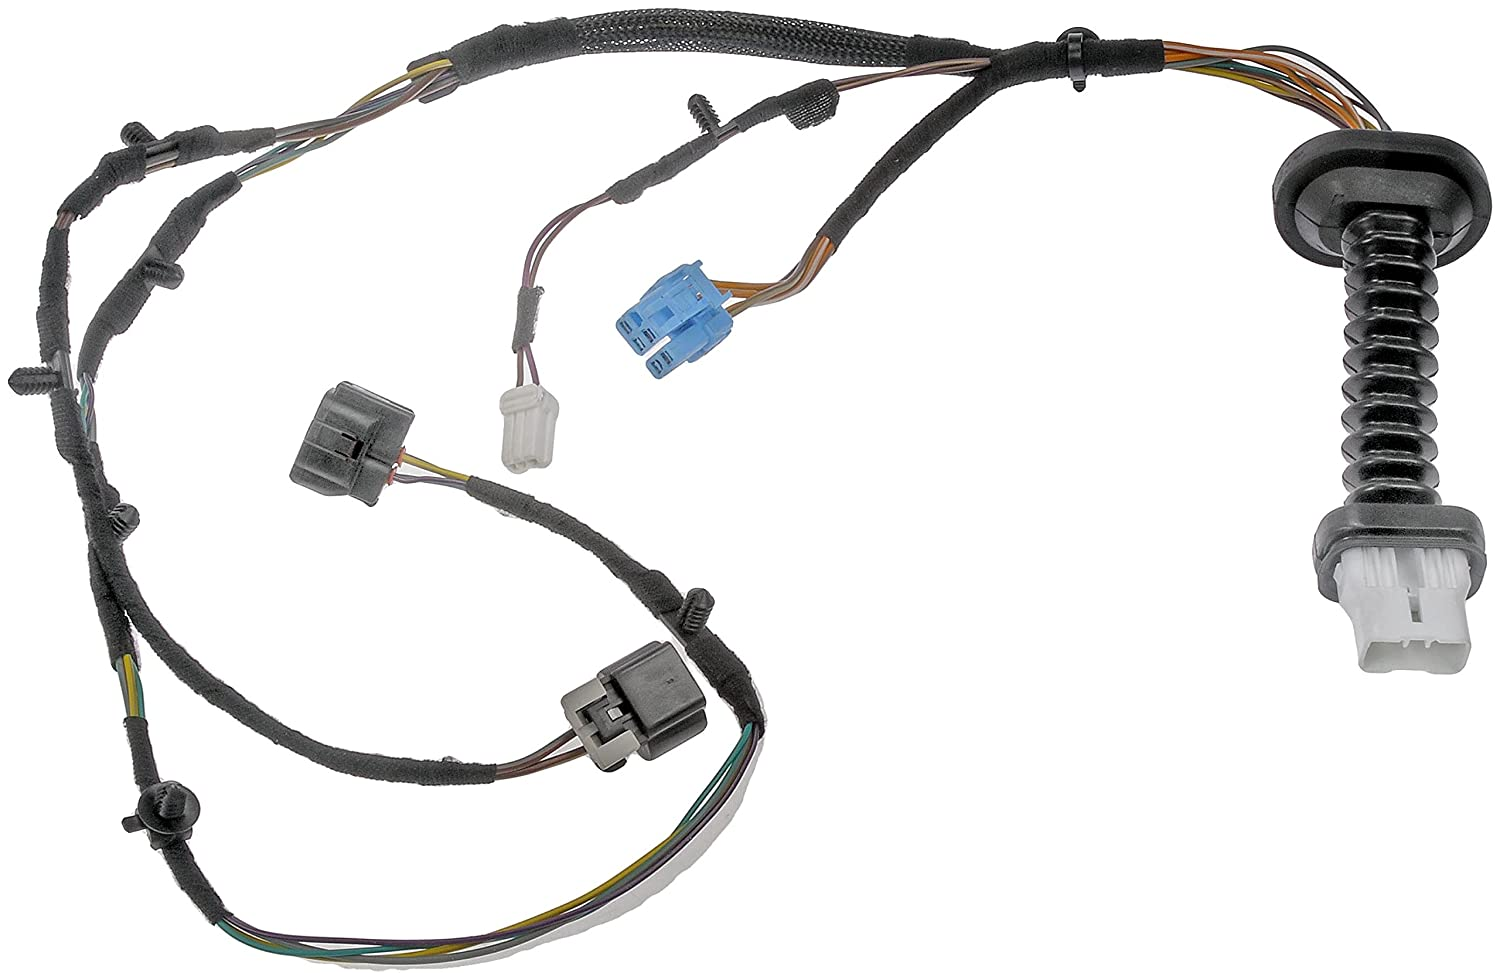 81c1LCEp7lL._SL1500_ amazon com dorman 645 506 door harness with connectors automotive dodge ram rear door wiring harness at readyjetset.co